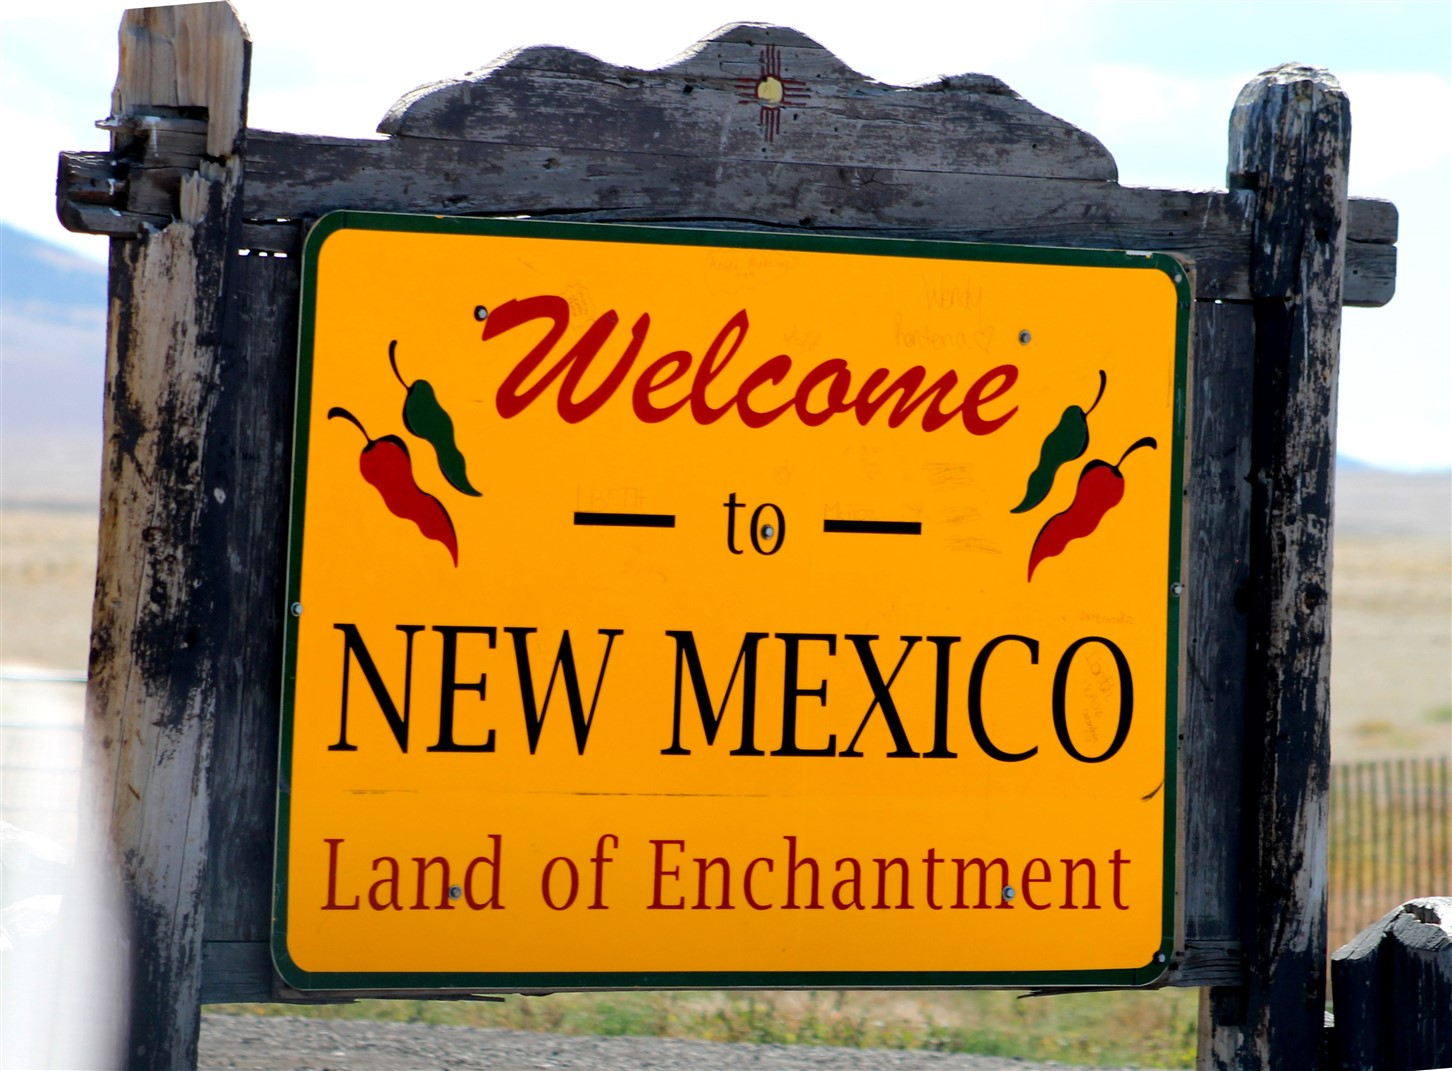 2015 09 20 104 Northern New Mexico.jpg